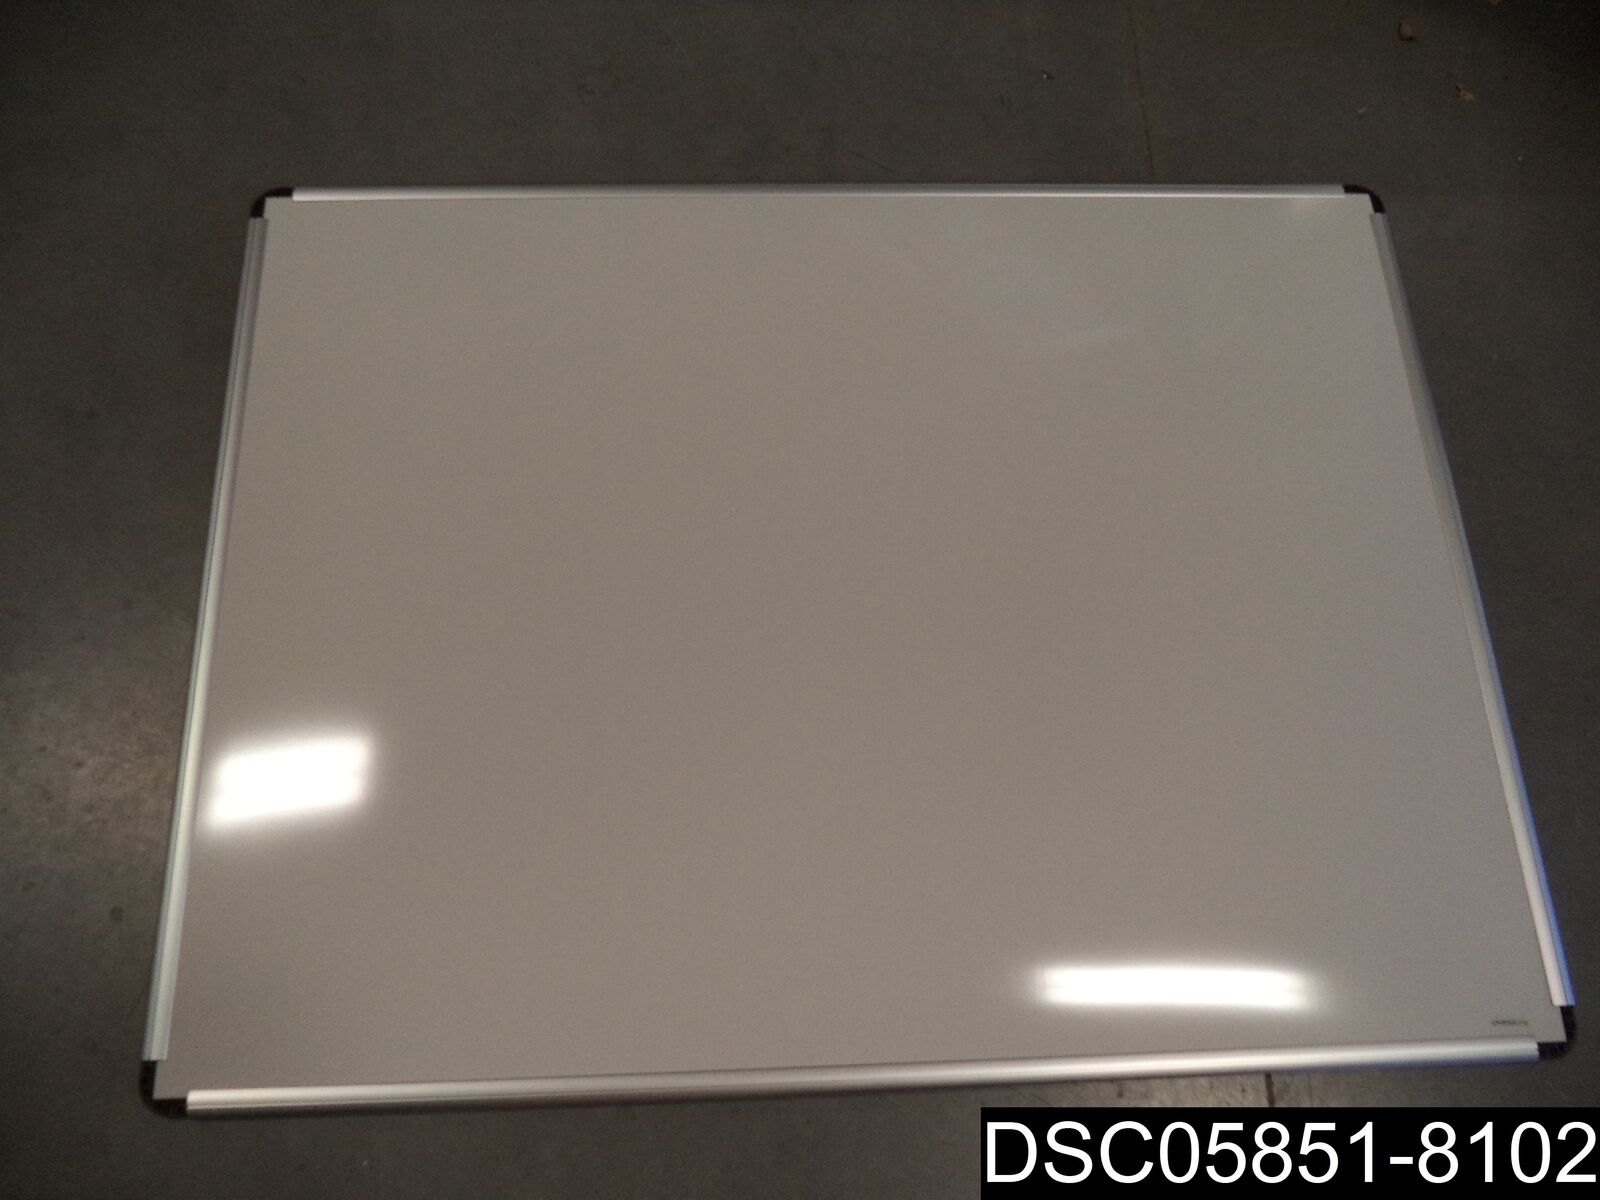 Universal One Porcelain Magnetic Dry Erase Board, 48 X 36, White UNV43842